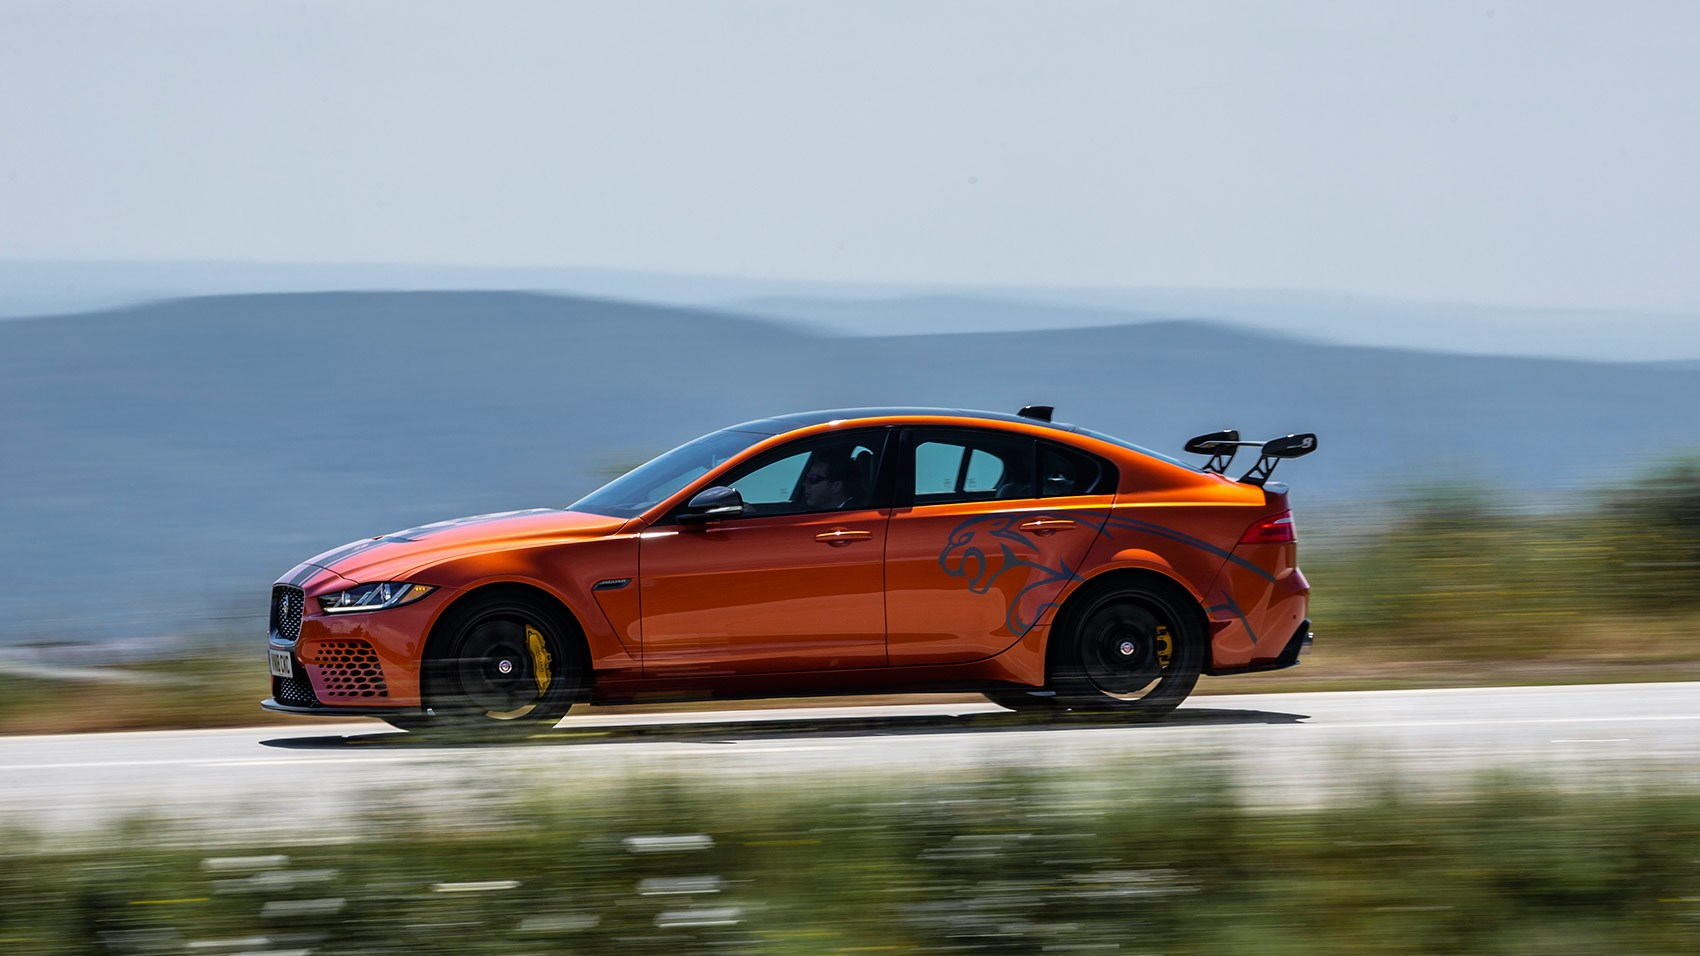 Decals and aggressive aero mark out the jaguar xe sv project 8 as something a little